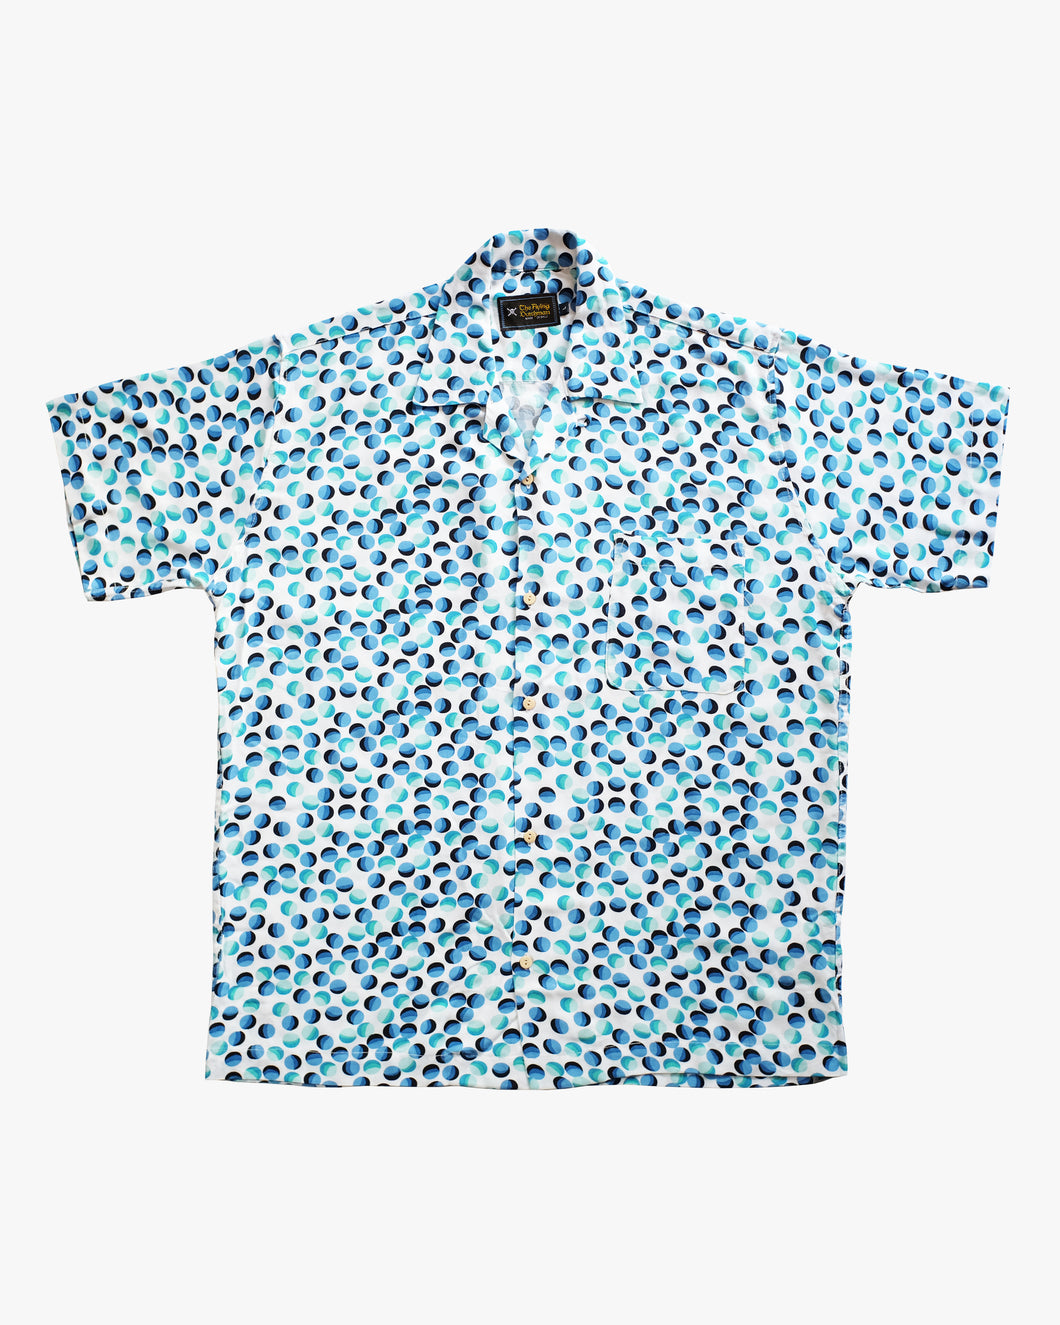 Bubble colored (white & blue) short sleeve shirt